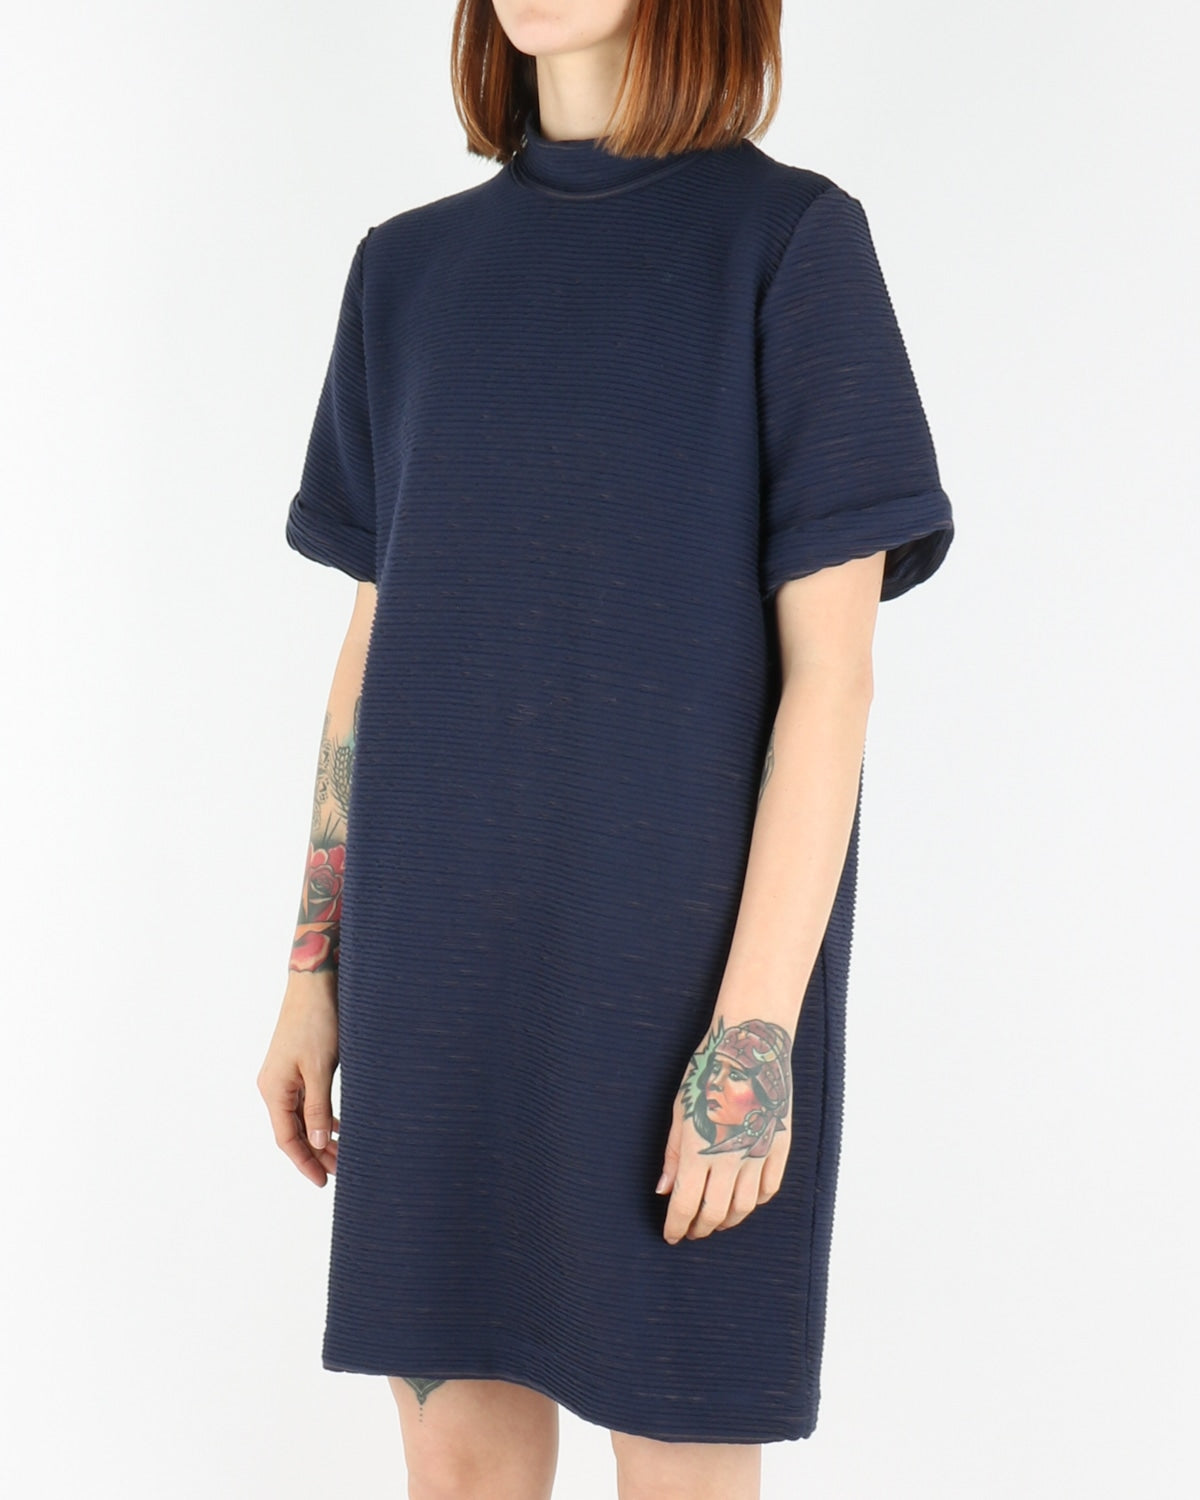 libertine libertine_habit dress_dark navy_view_2_3